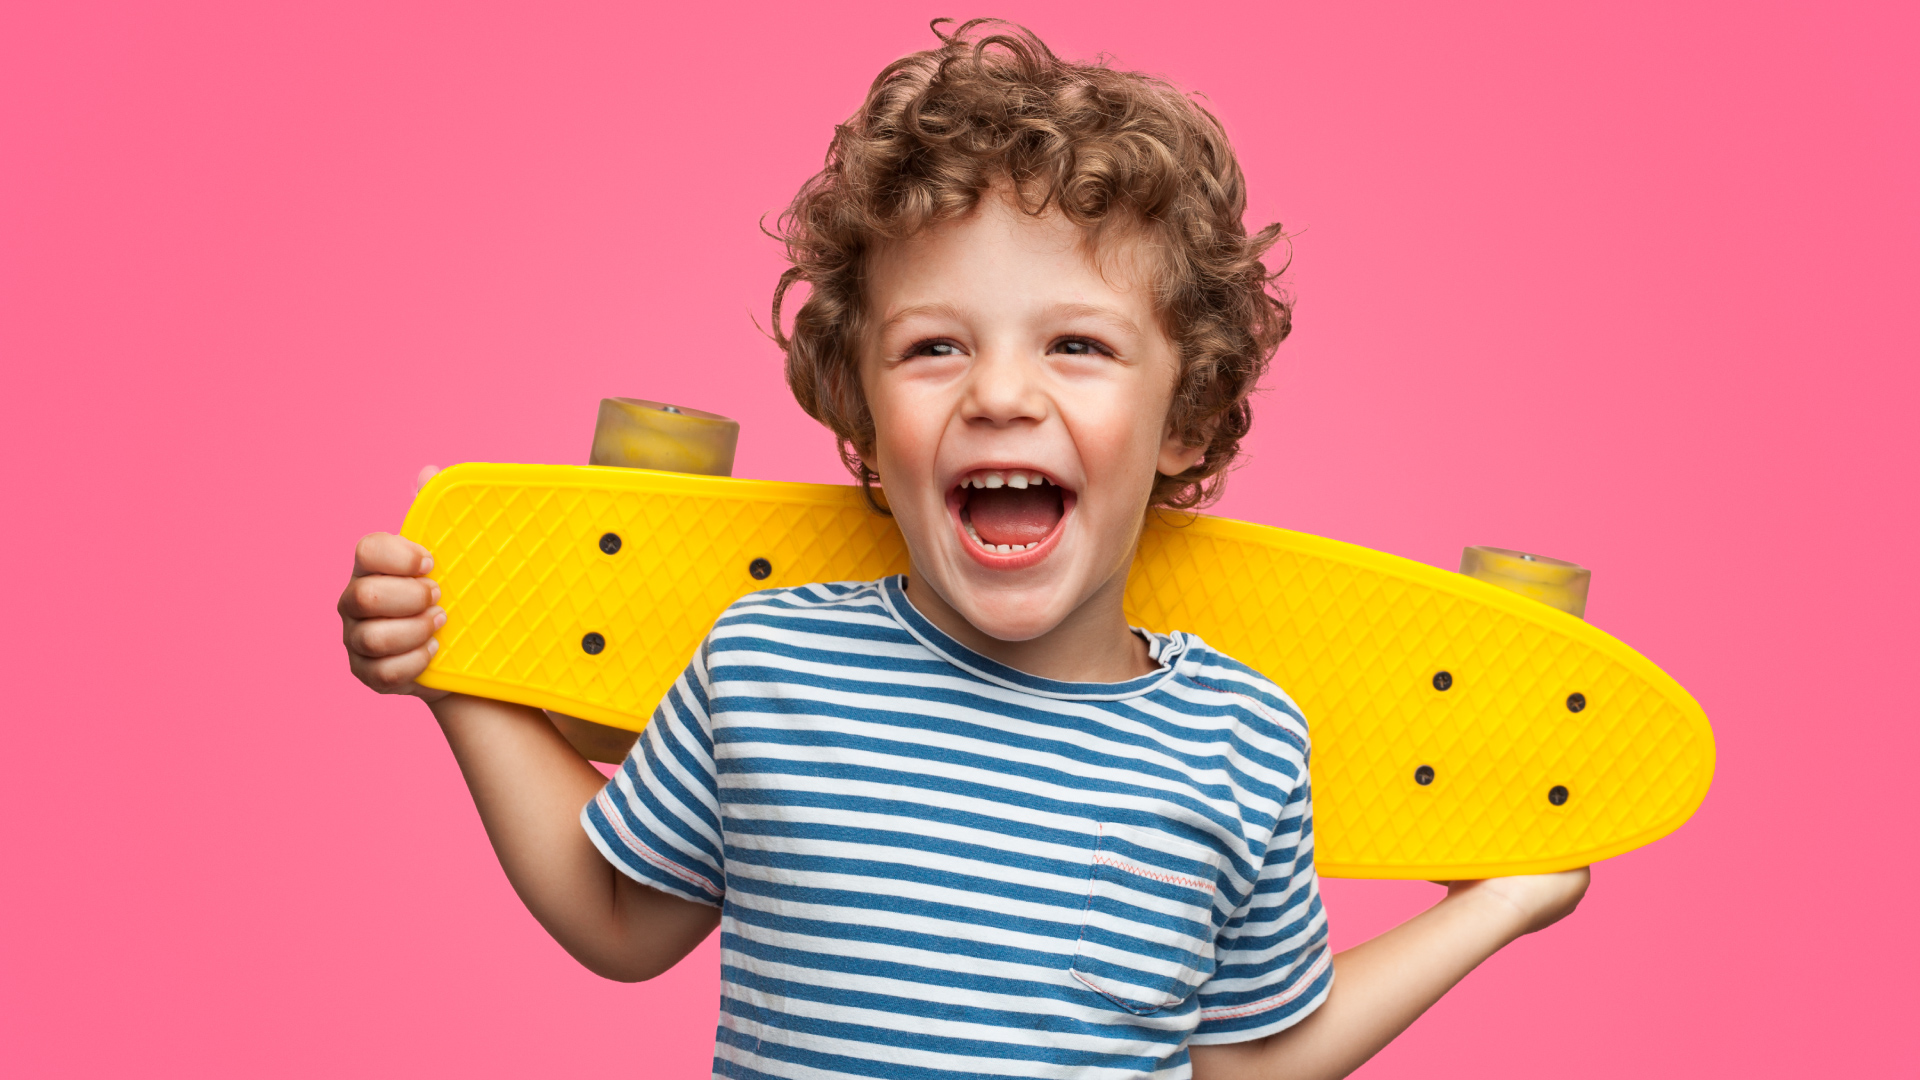 Smiling child holding a skateboard behind his back